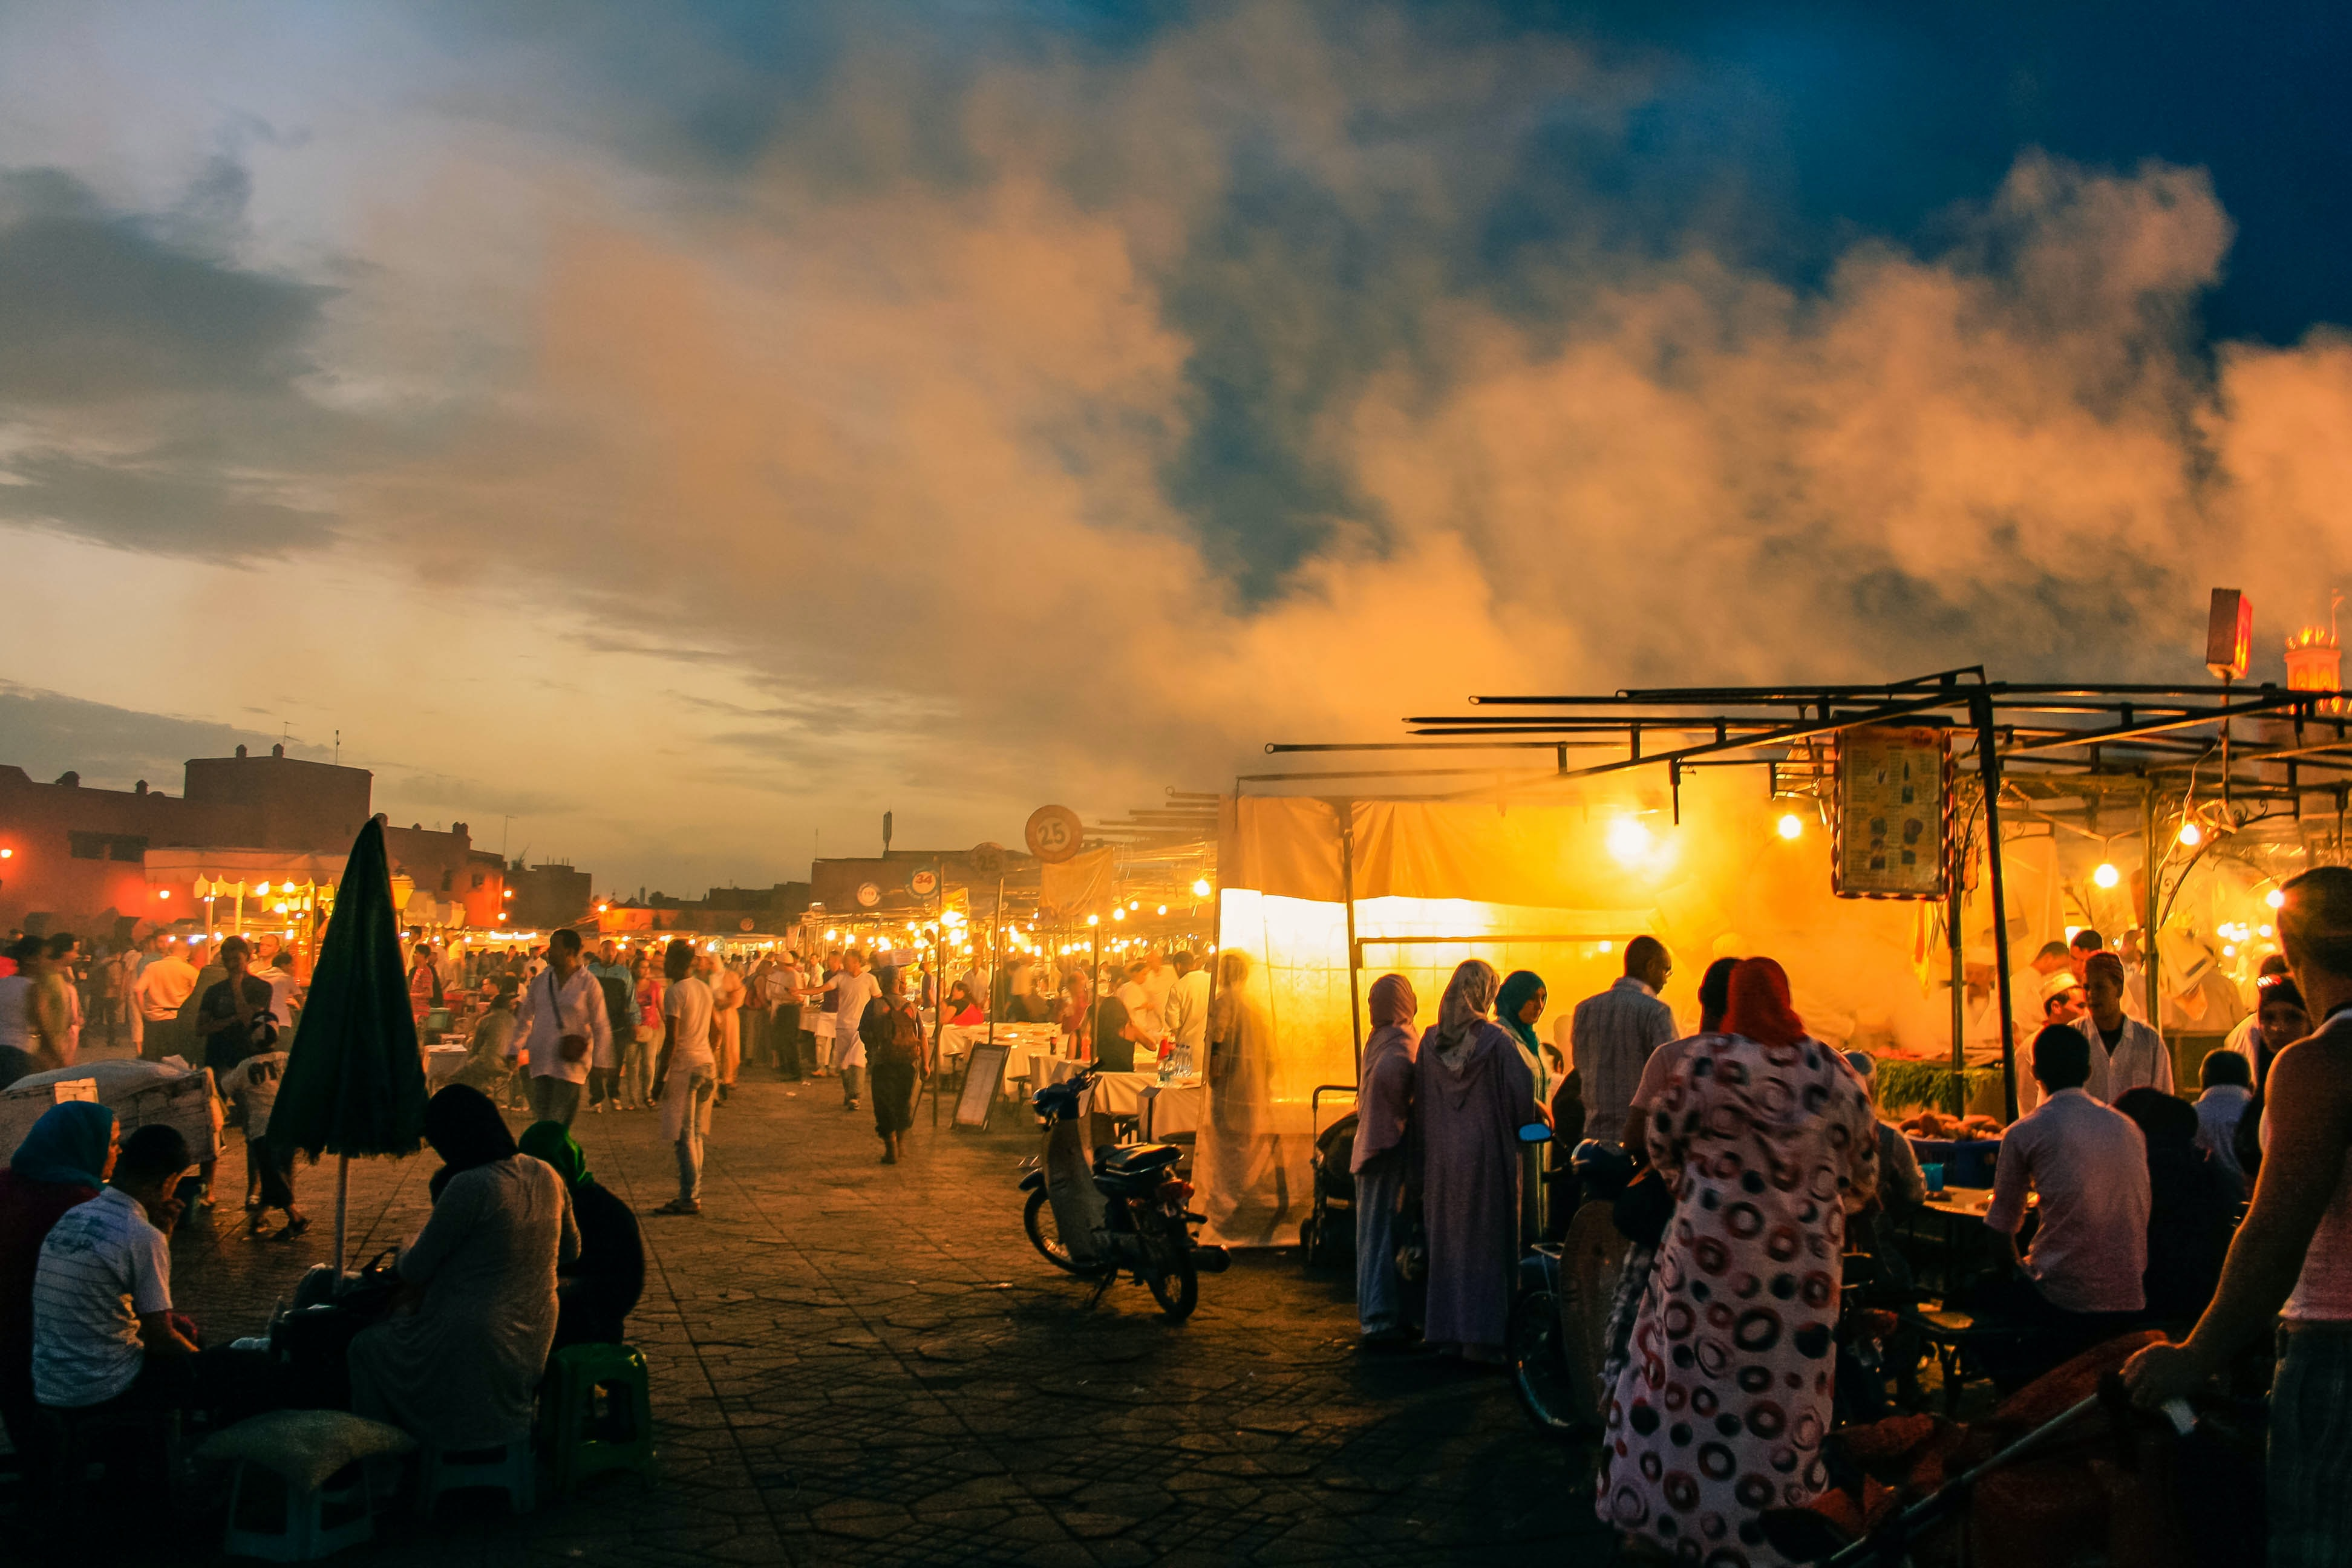 Orange glow and smoke rising up from a crowded bazaar on an evening